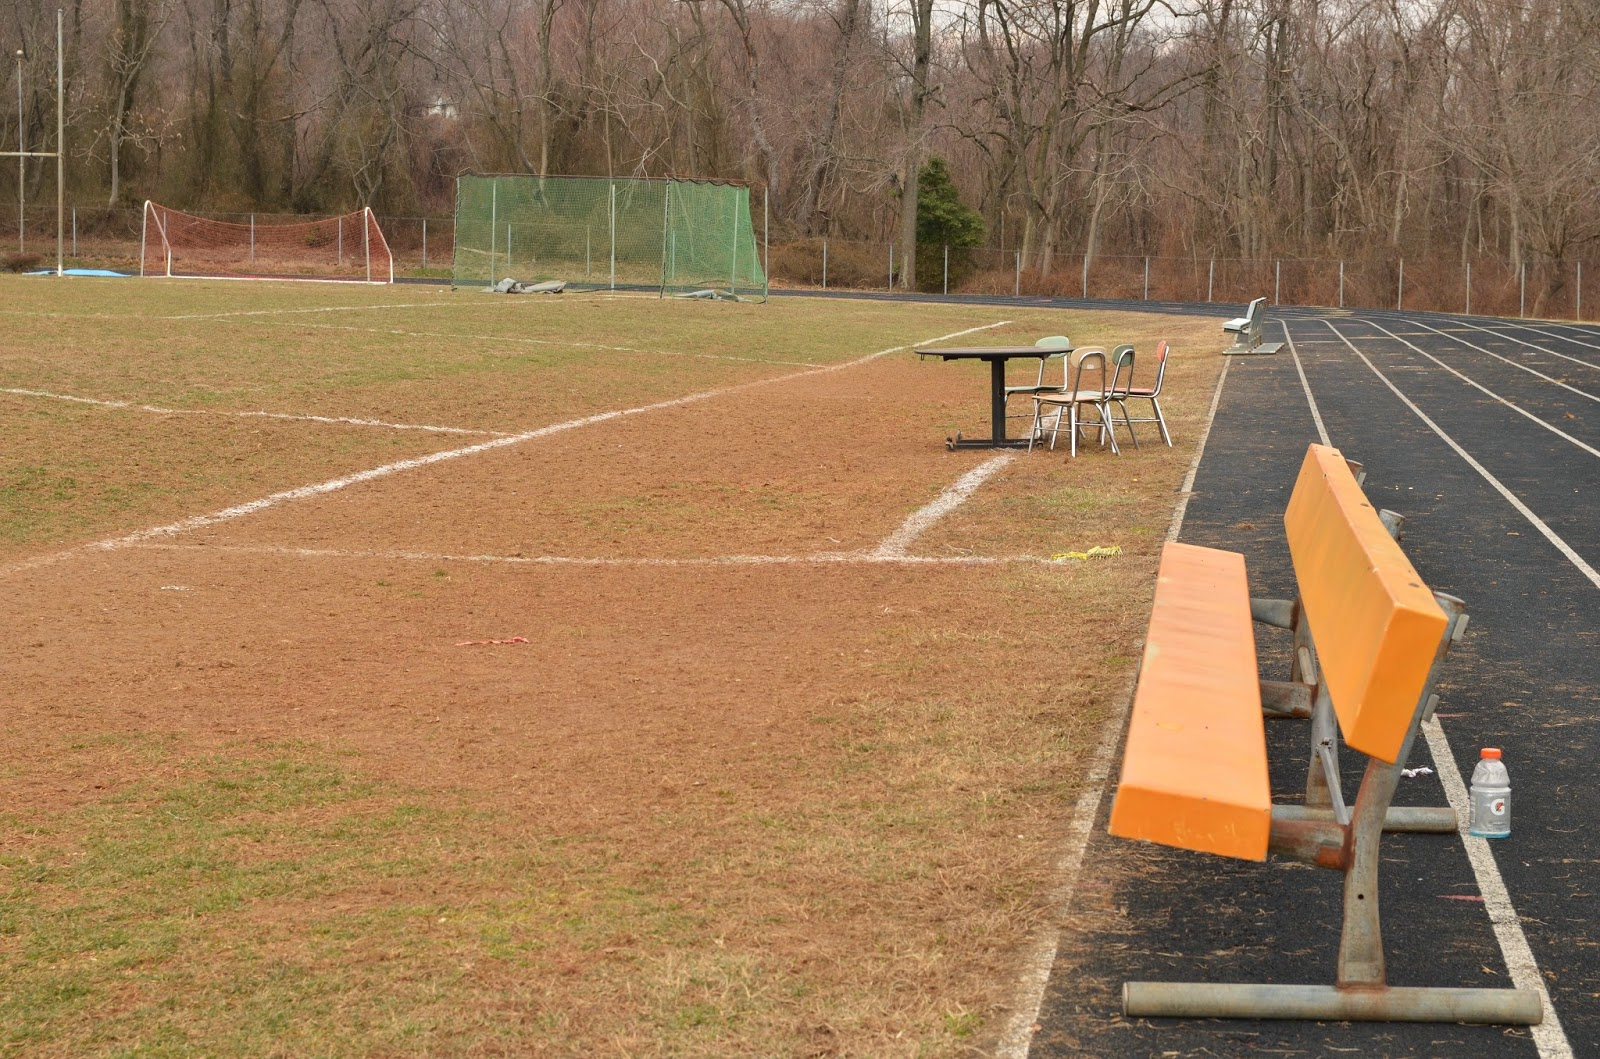 Perryville High School players bench